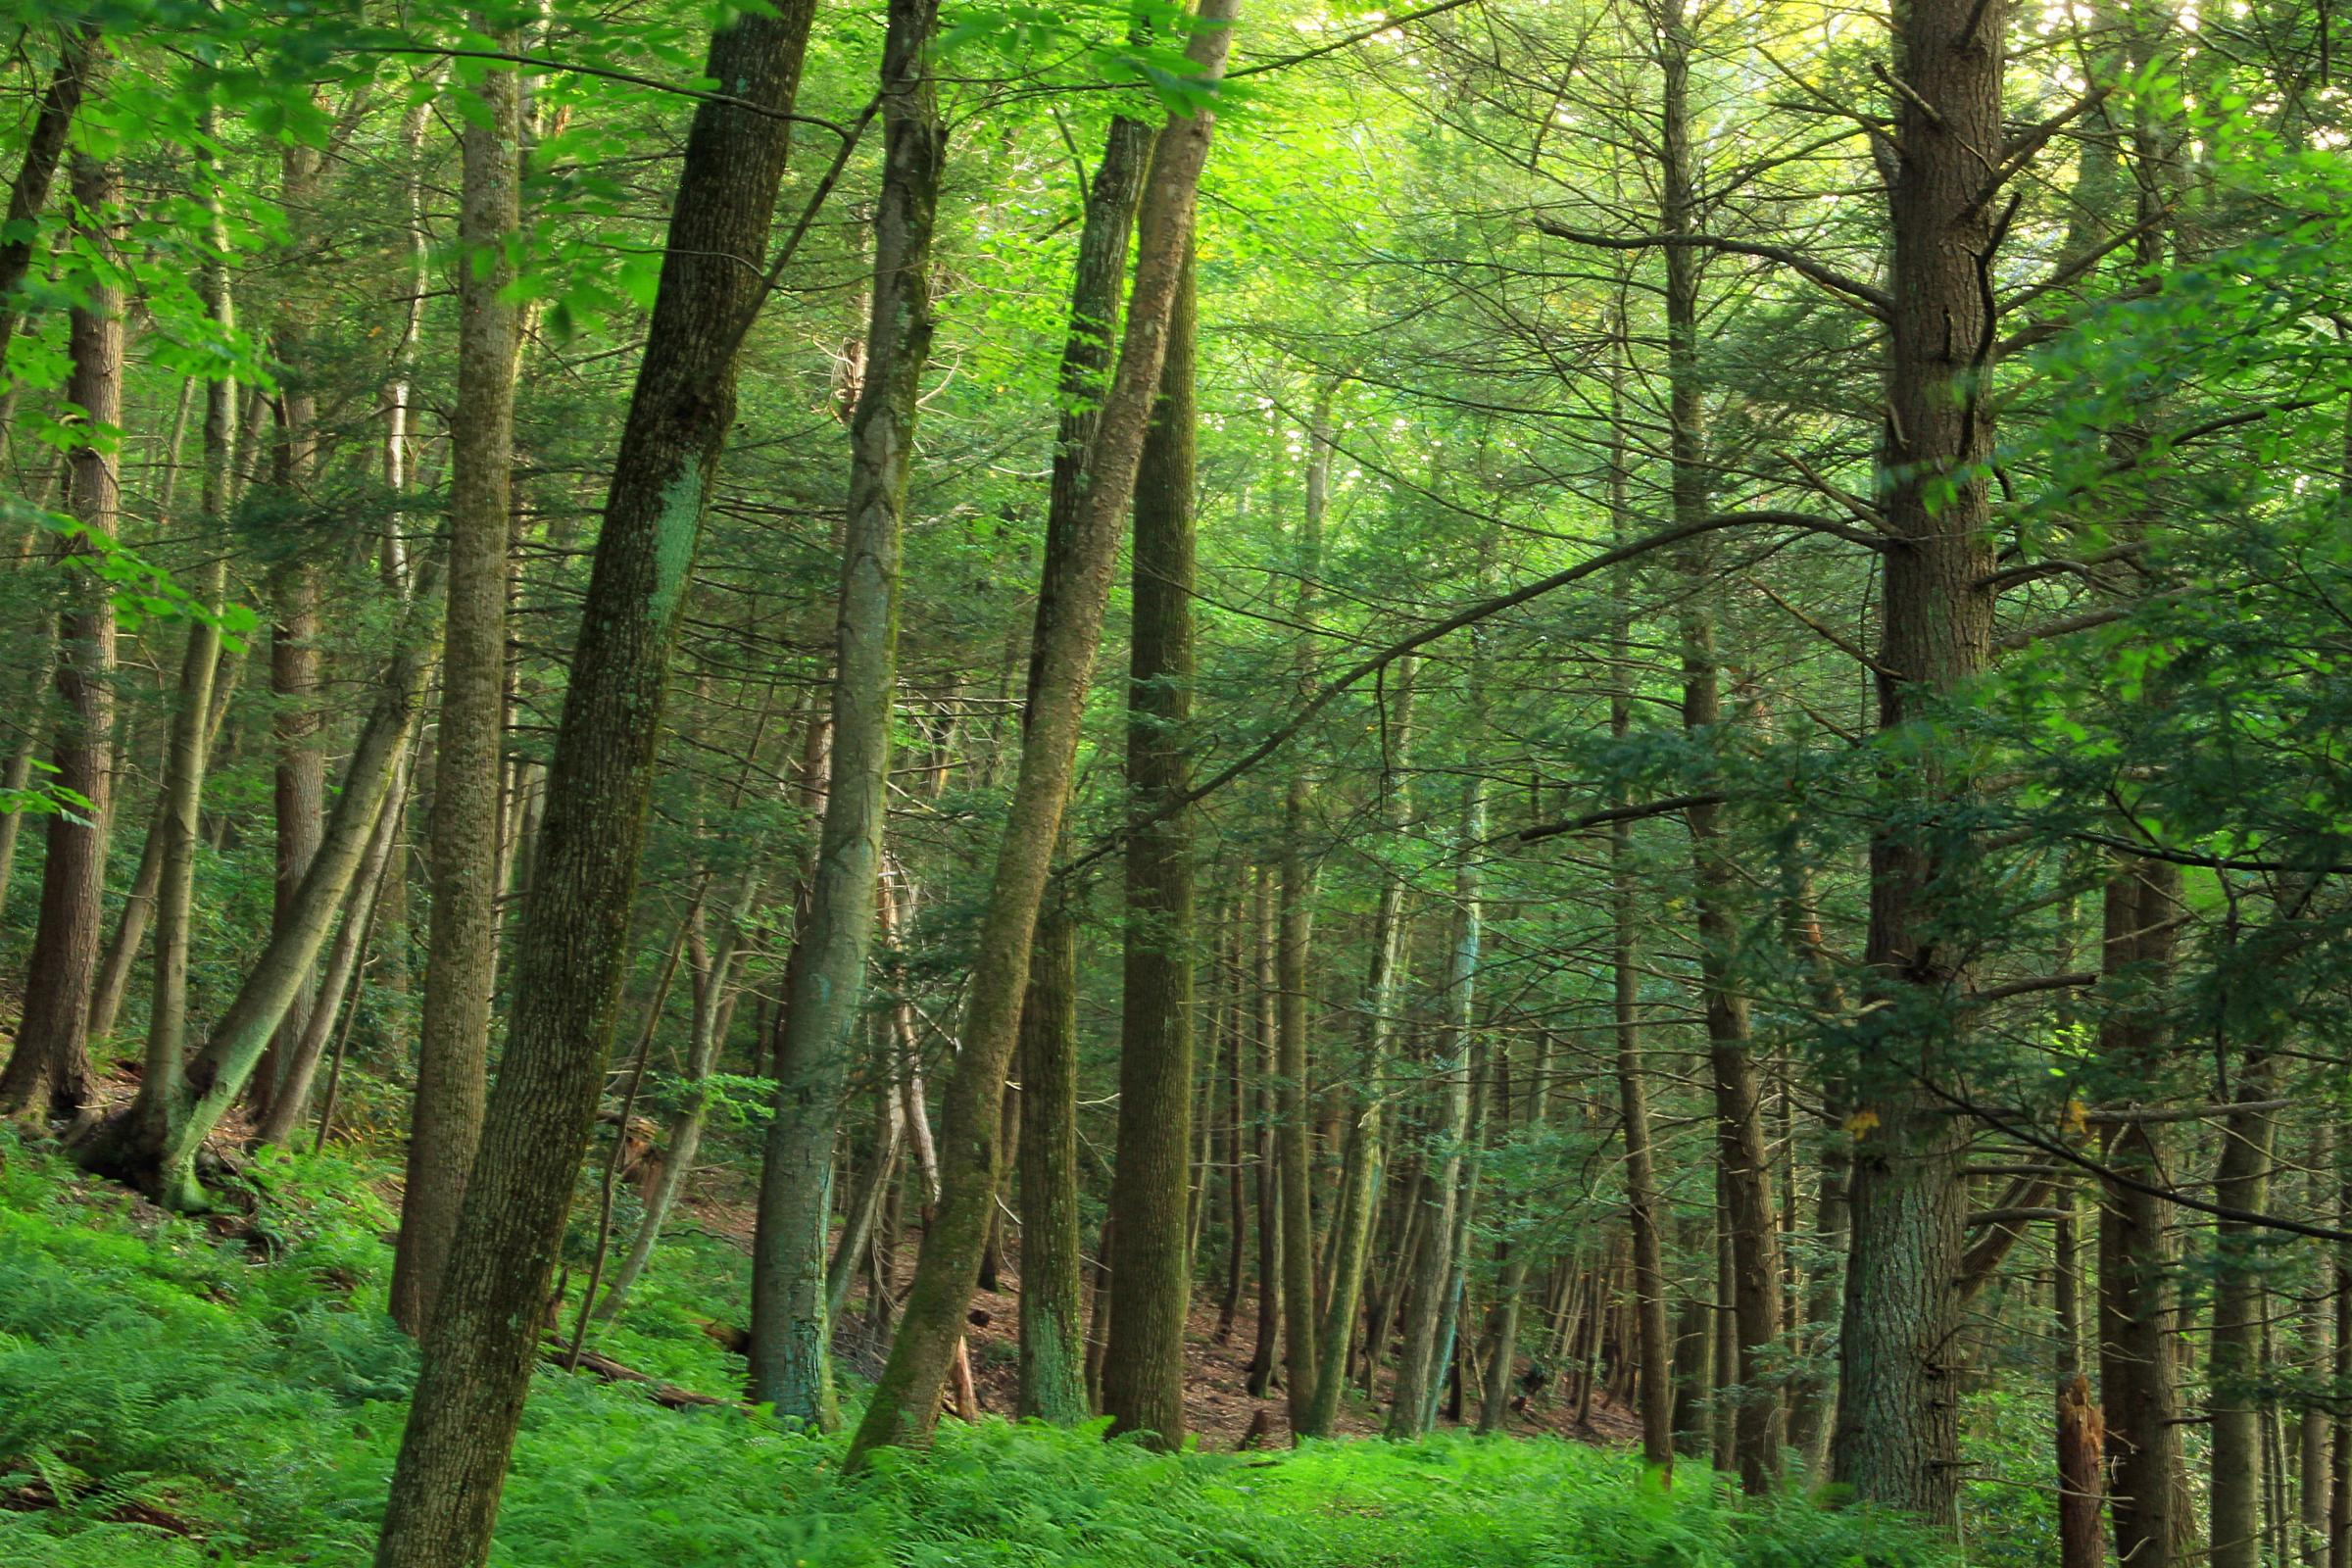 Factors Threatening the Appalachian Hemlock